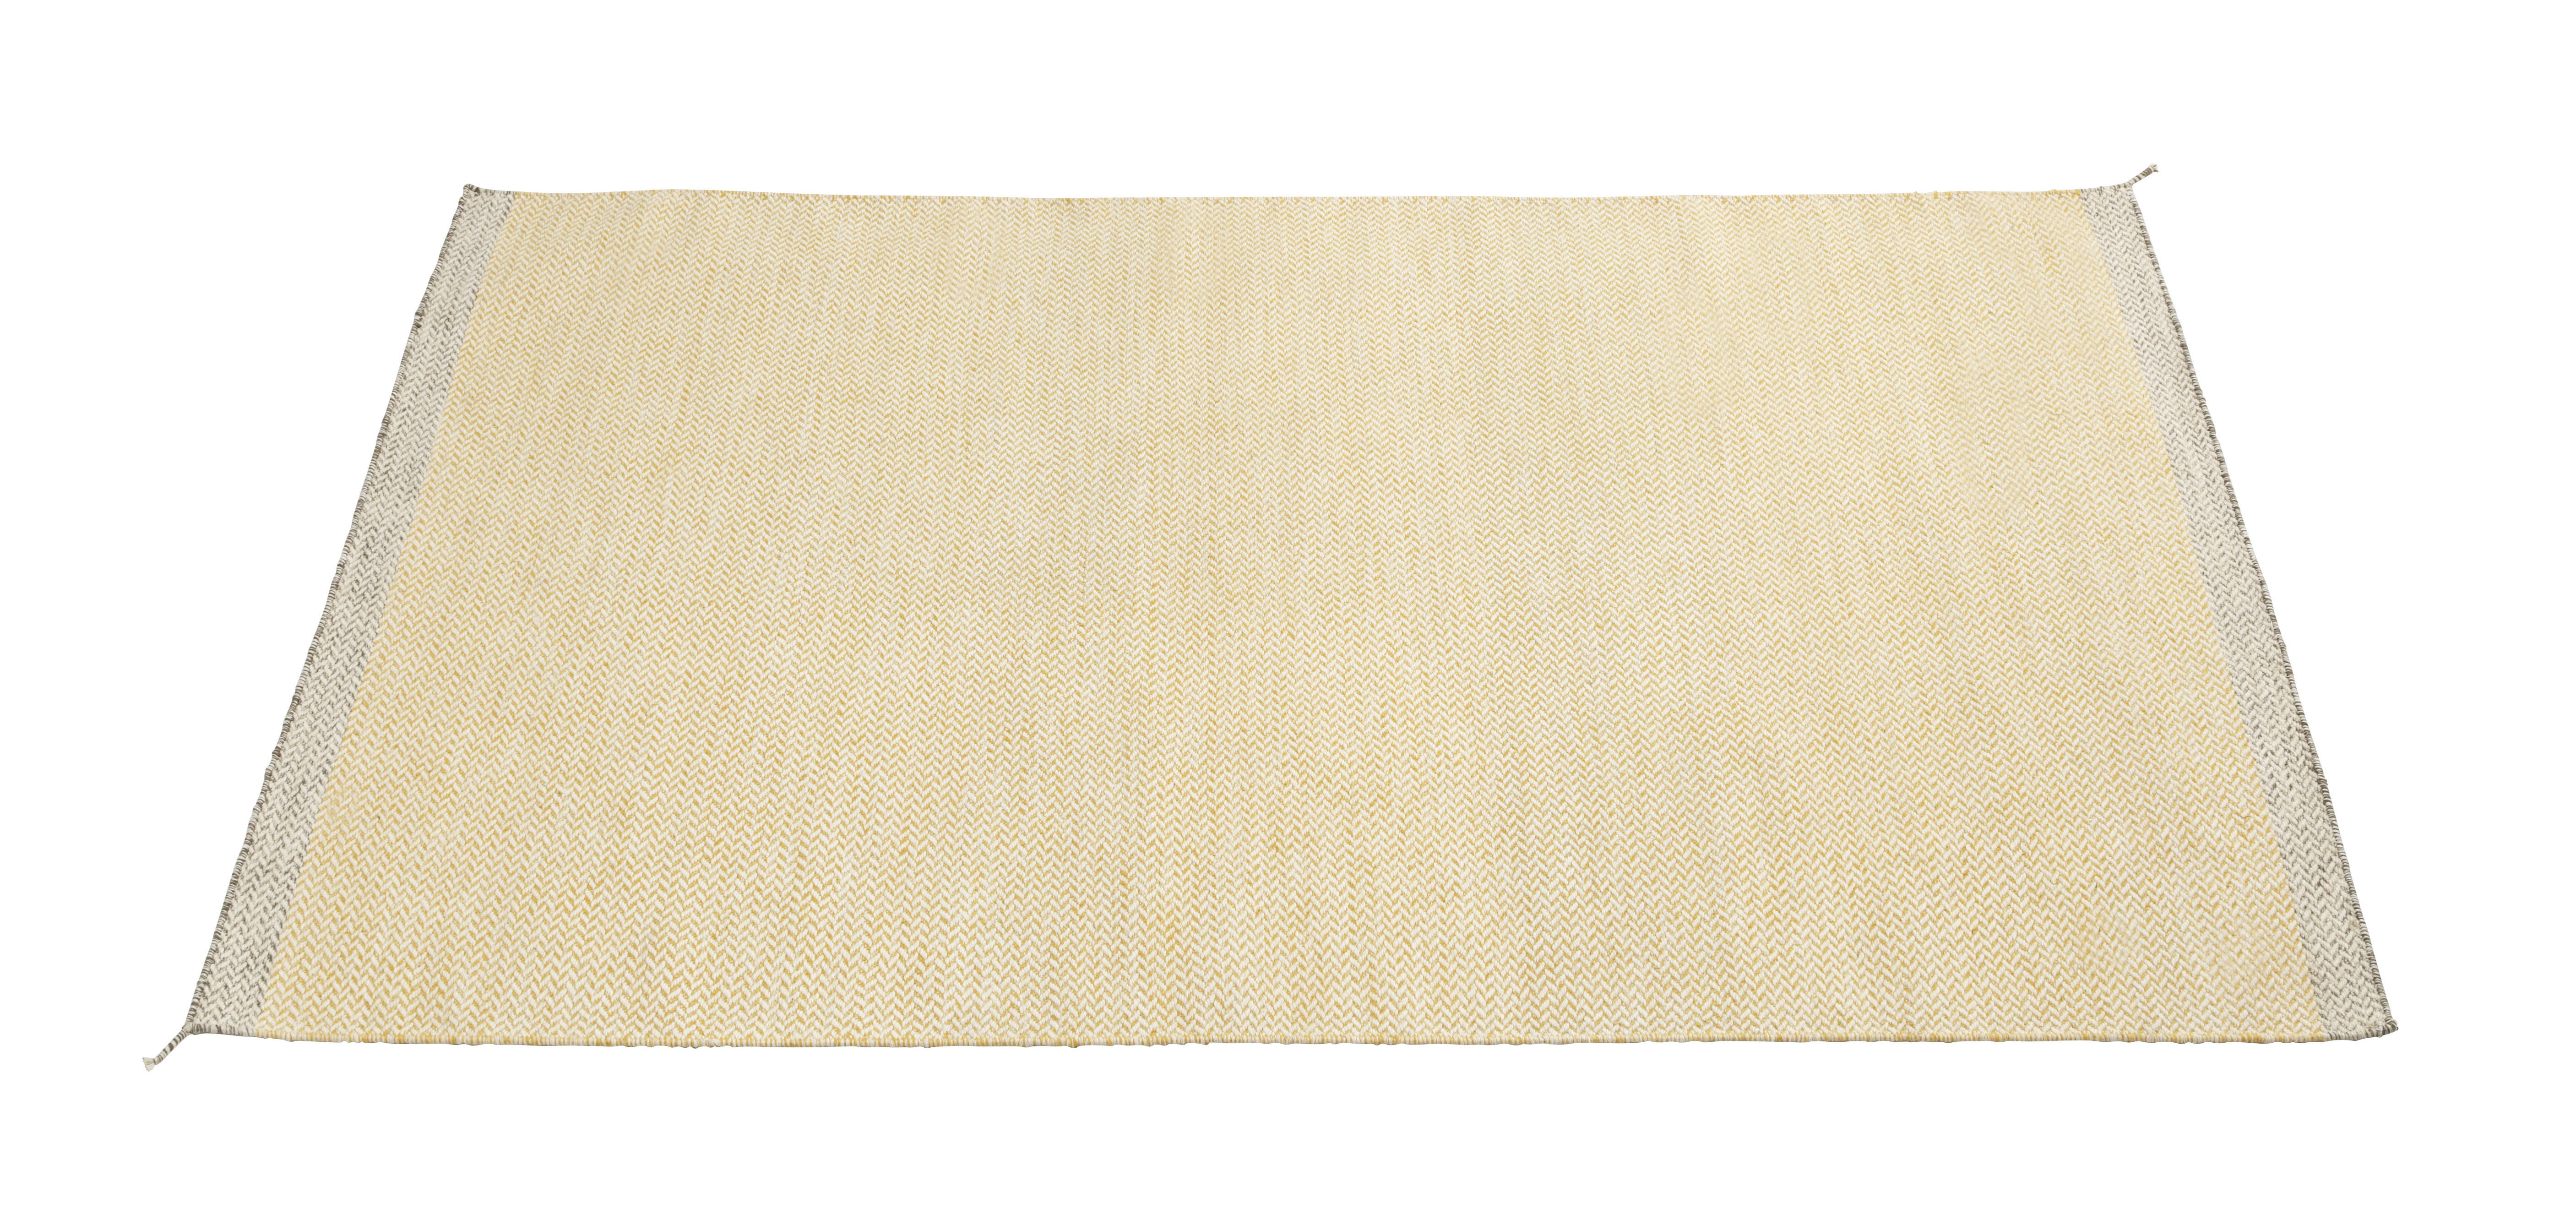 Decoration - Rugs - PLY Rug - 174 x 240 cm by Muuto - Yellow - Wool